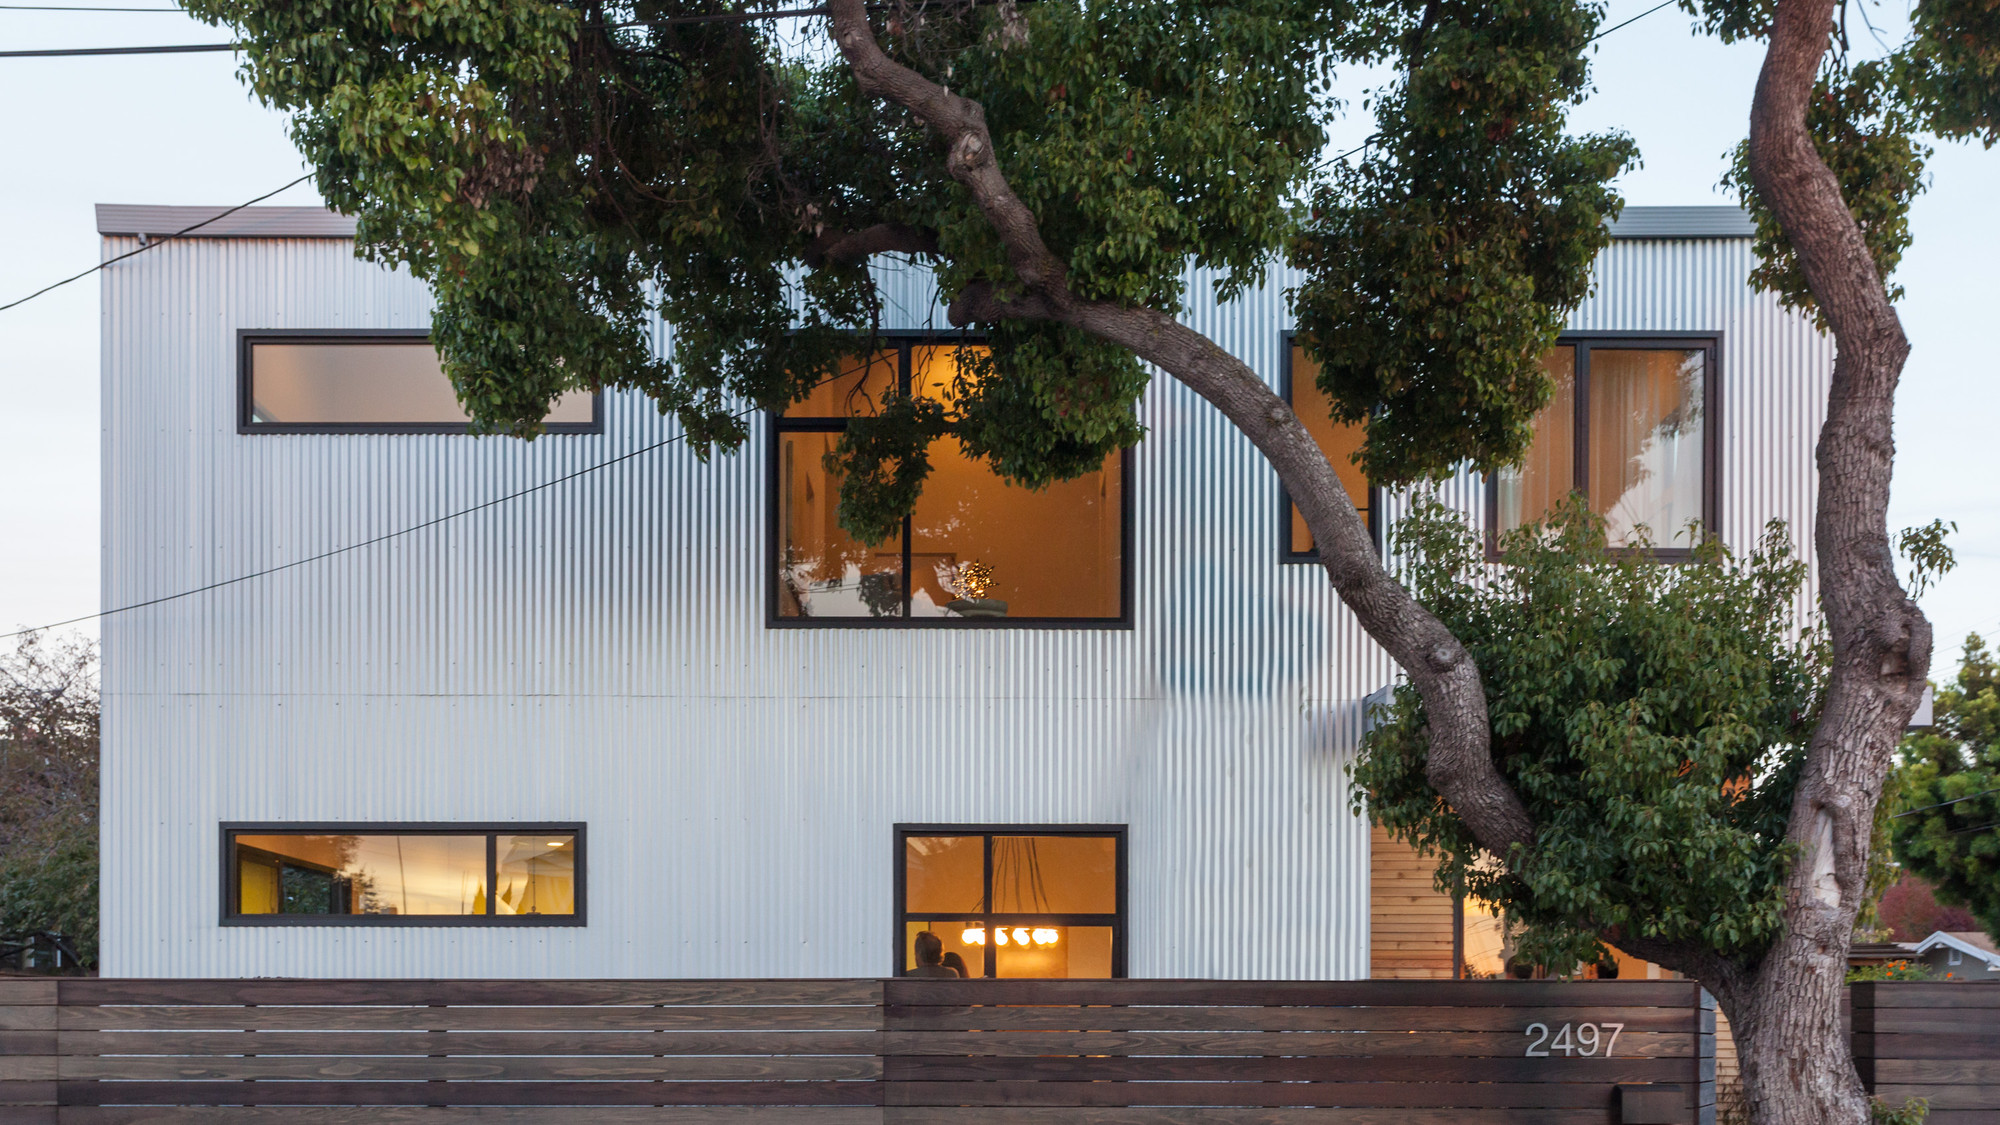 Casa en Valley Street / Baran Studio Architecture, © Peter Lyons